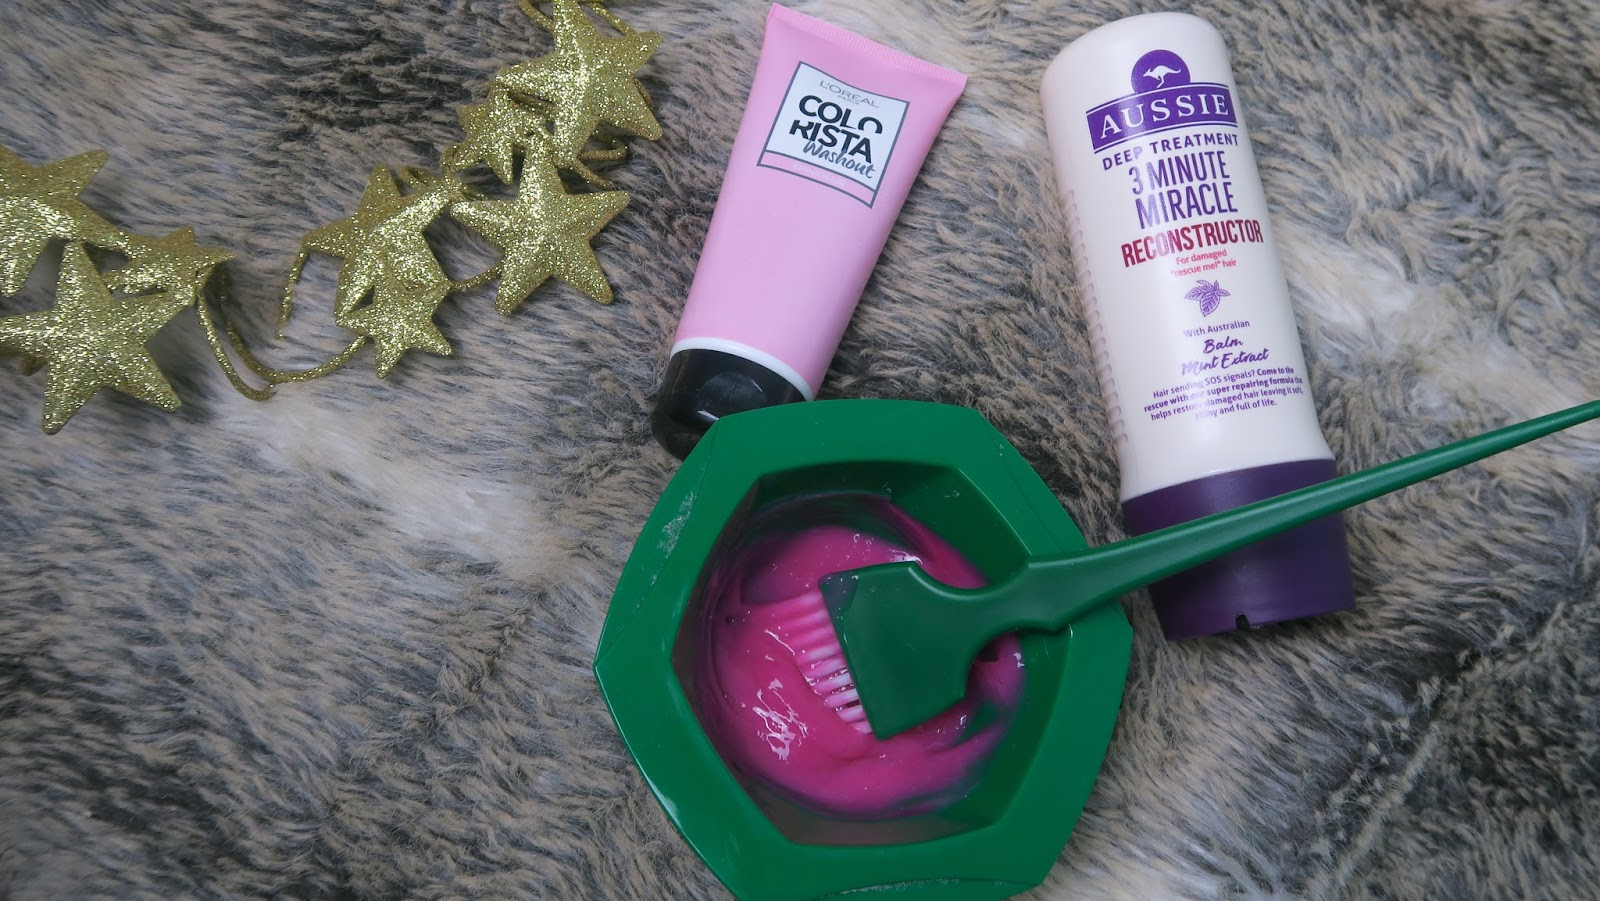 aussie three minute miracle reconstructor, alongside a green dye bowl and brush, with an intense pink cream solution in the bowl, on a faux fur throw; a teal cushion and gold star wreath sit beside them, along with l'oreal colorista washout pink hair dye